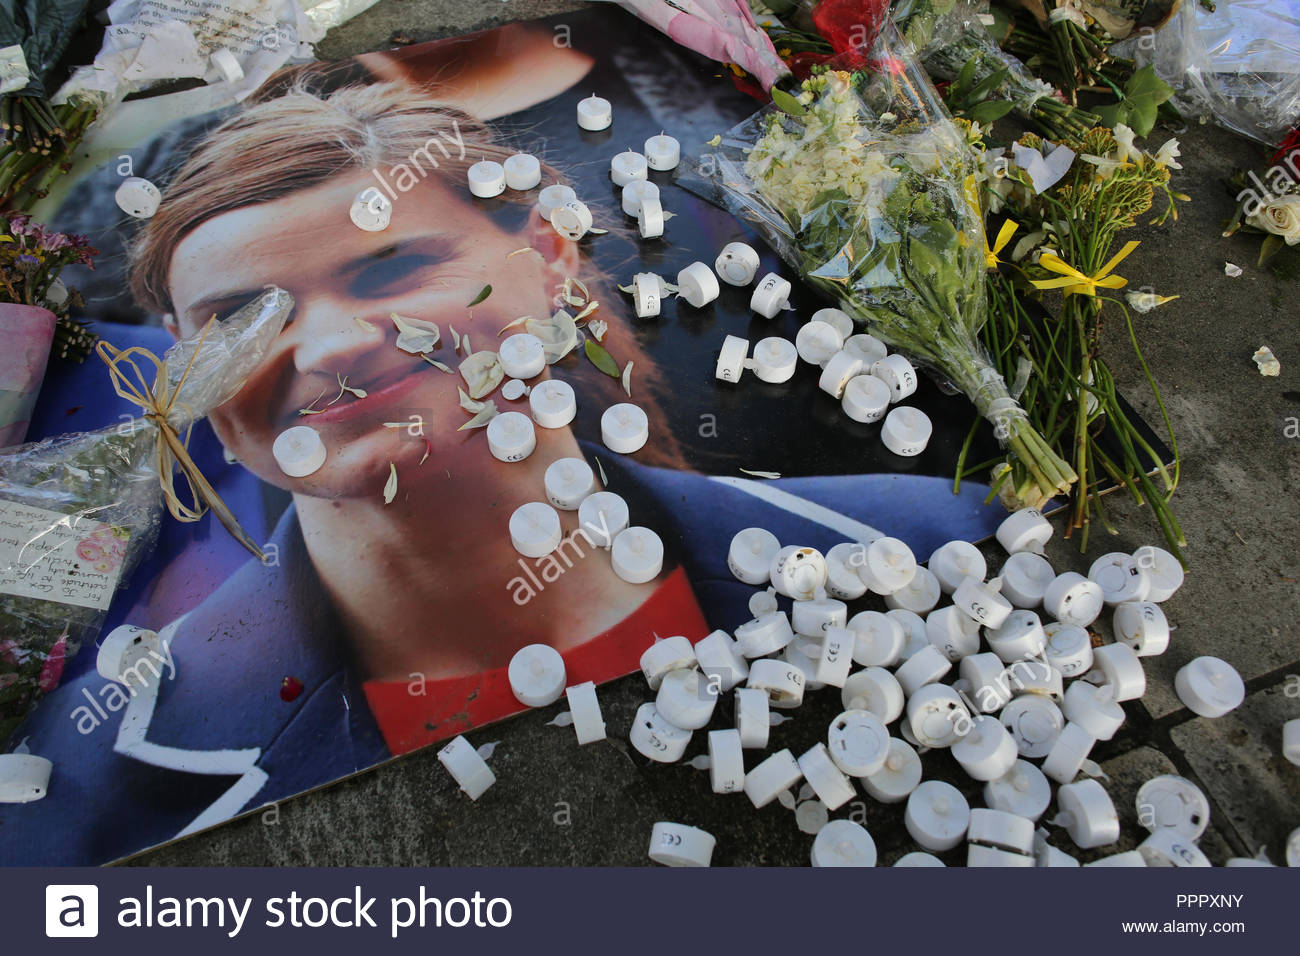 Flowers and candle holders strew across a photograph of Jo Cox in London. - Stock Image